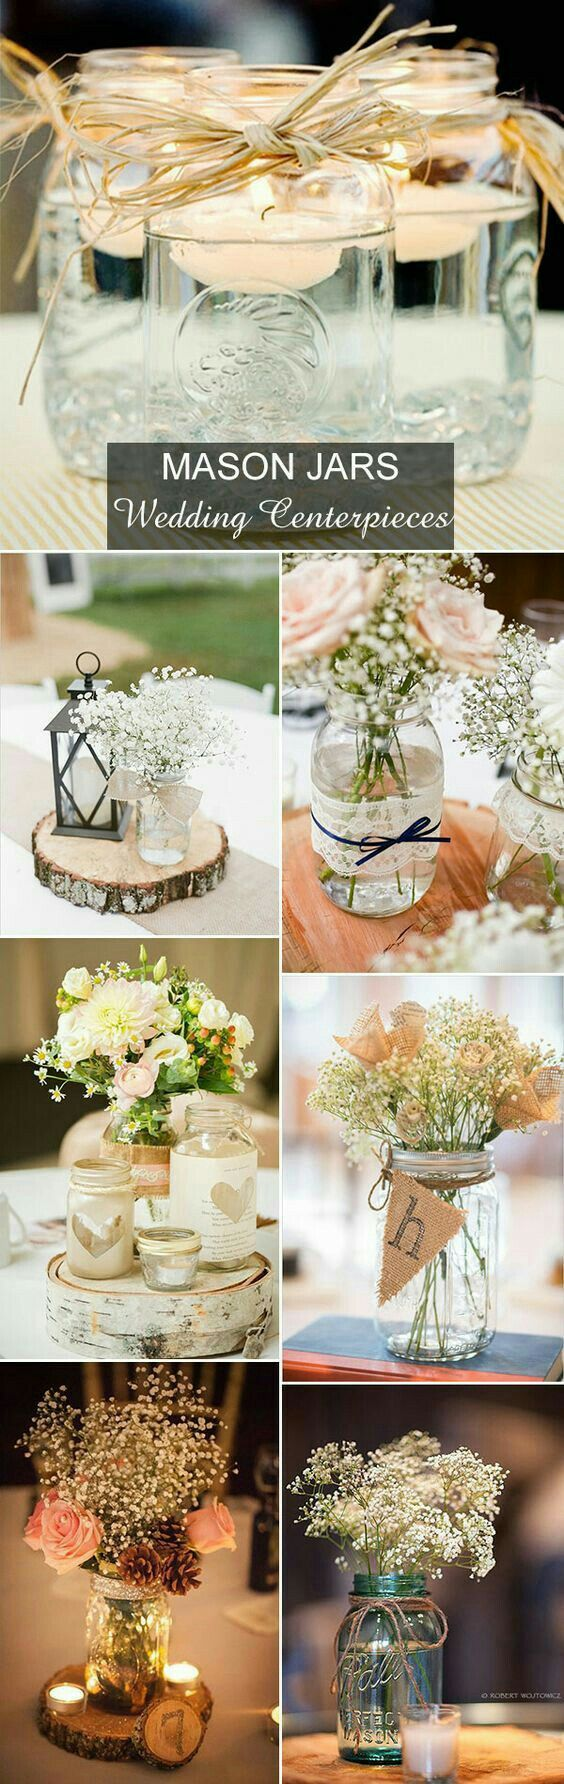 make your own wedding flower centerpieces%0A If you u    re looking to give your wedding a rustic country touch  try out  these mason jar centerpiece ideas  They u    ll be the highlight of your  beautiful